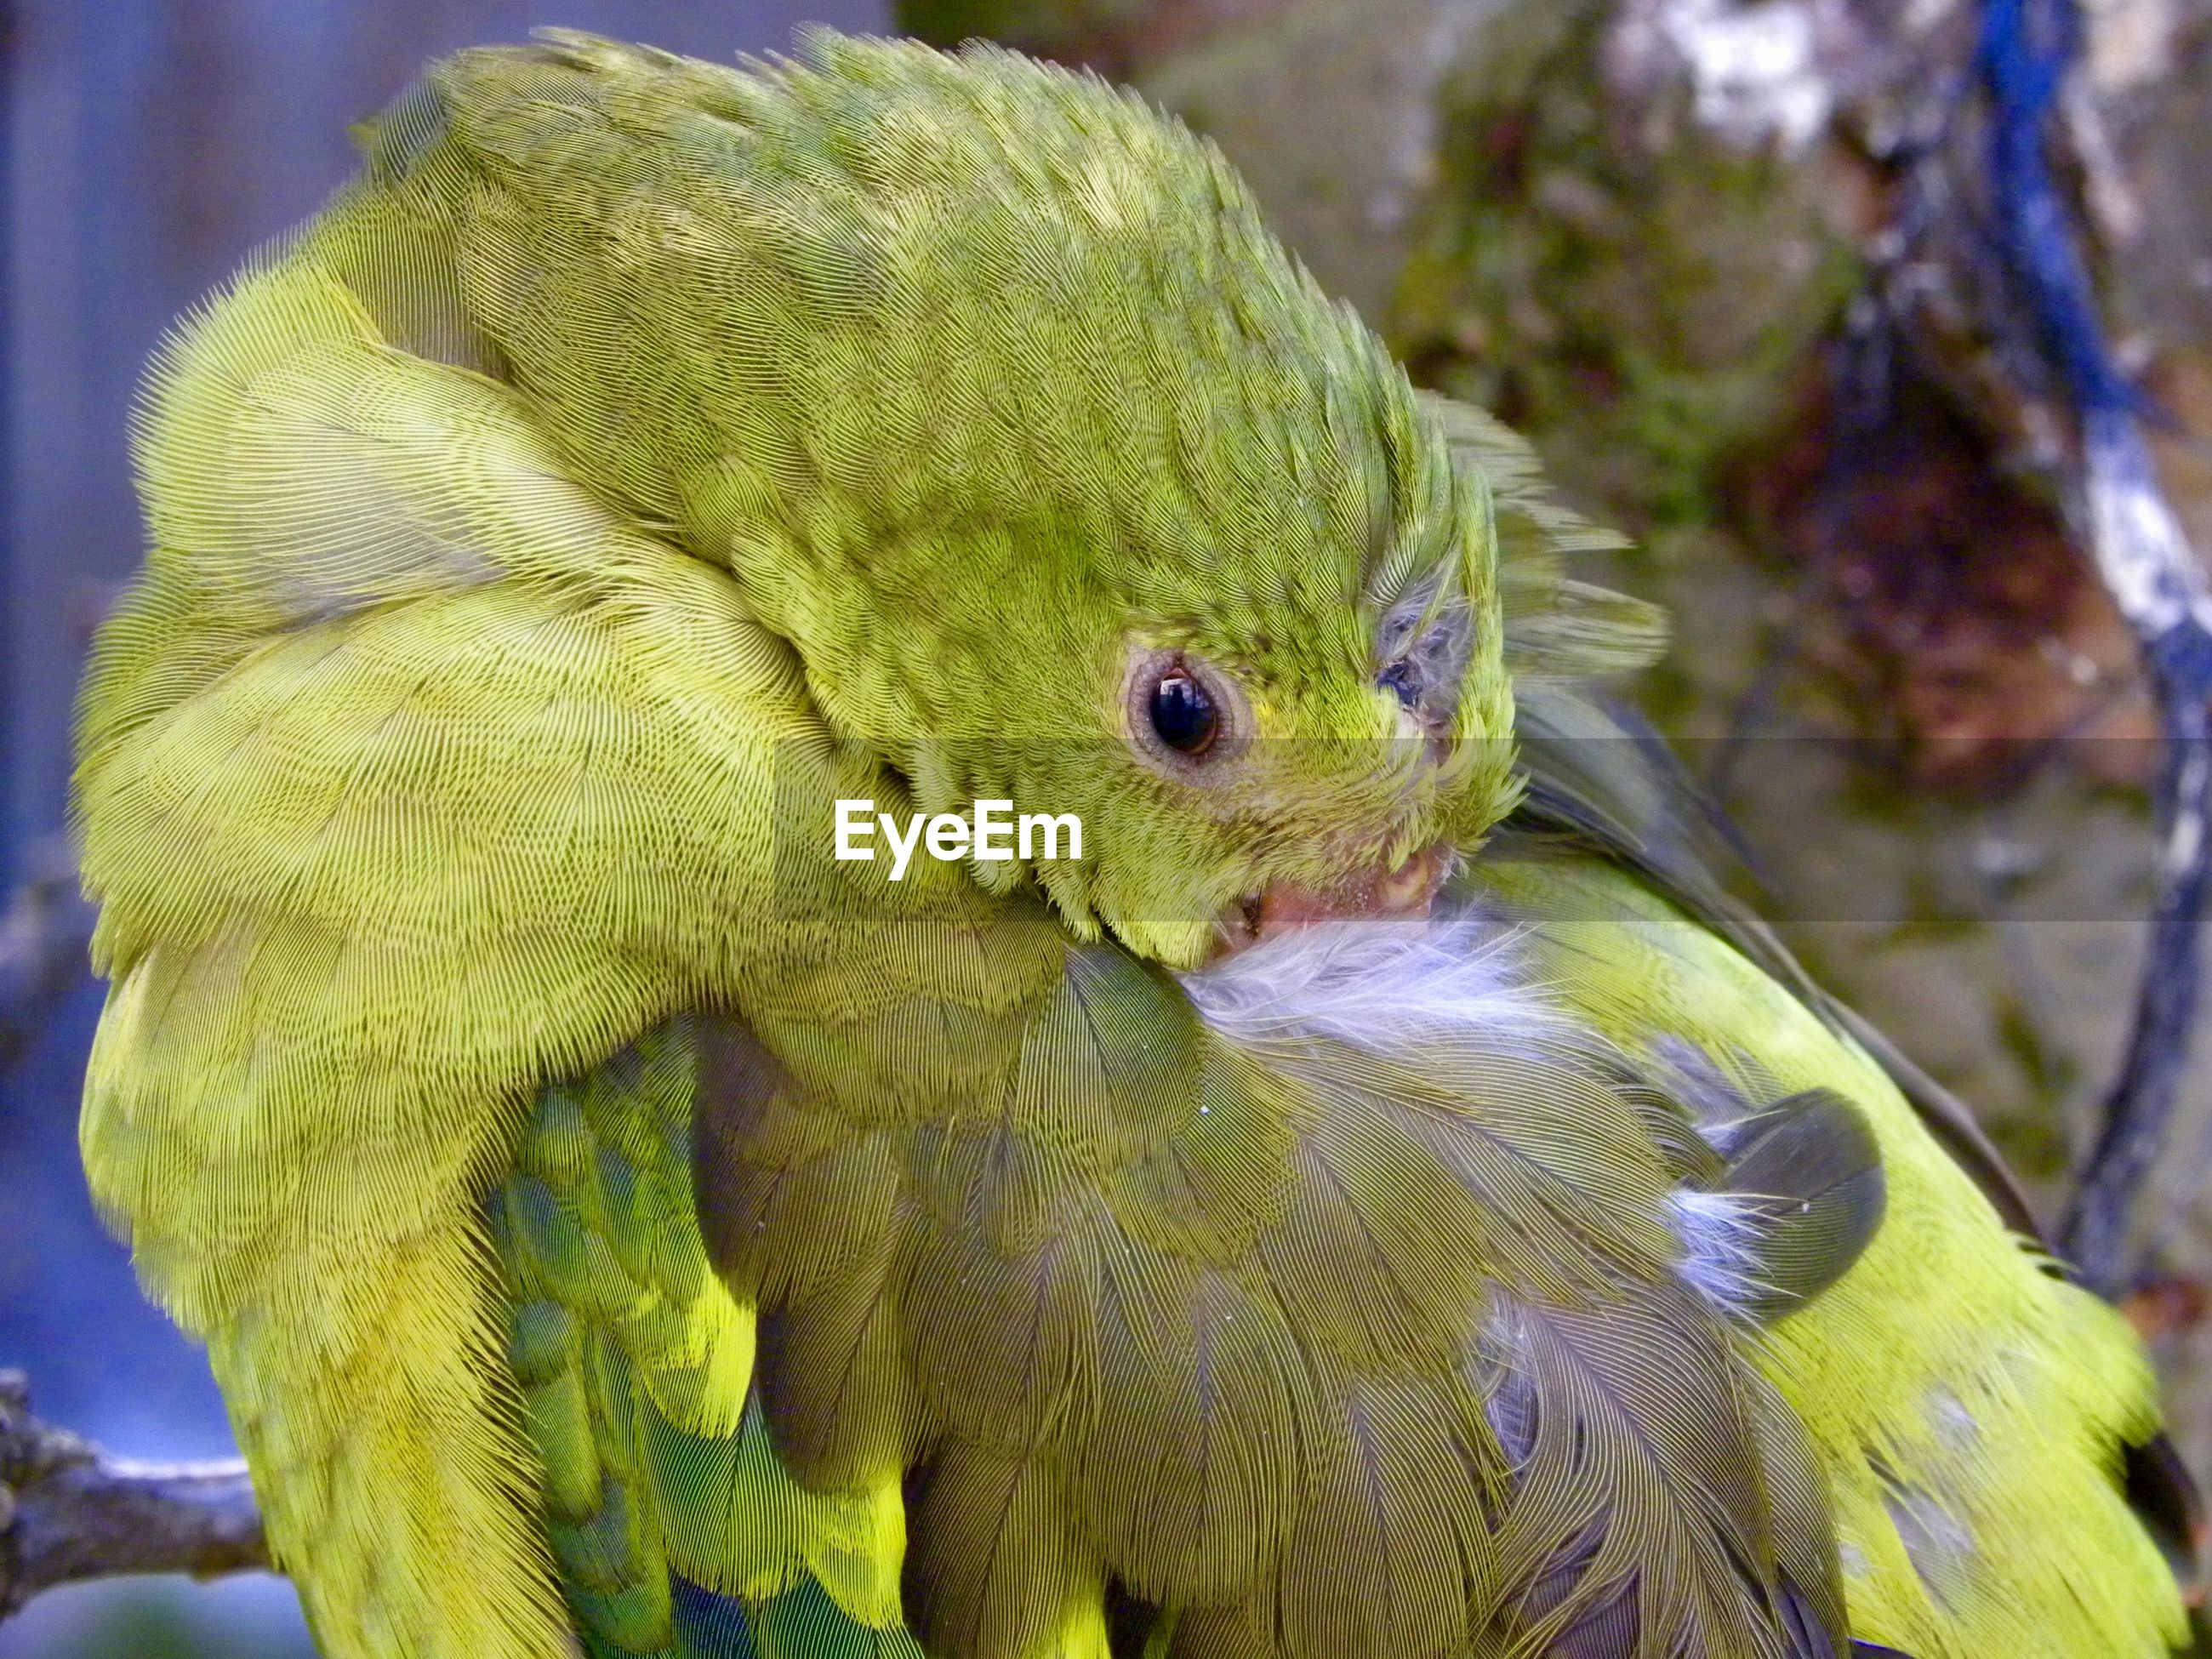 Green parrot cleanses his feathered